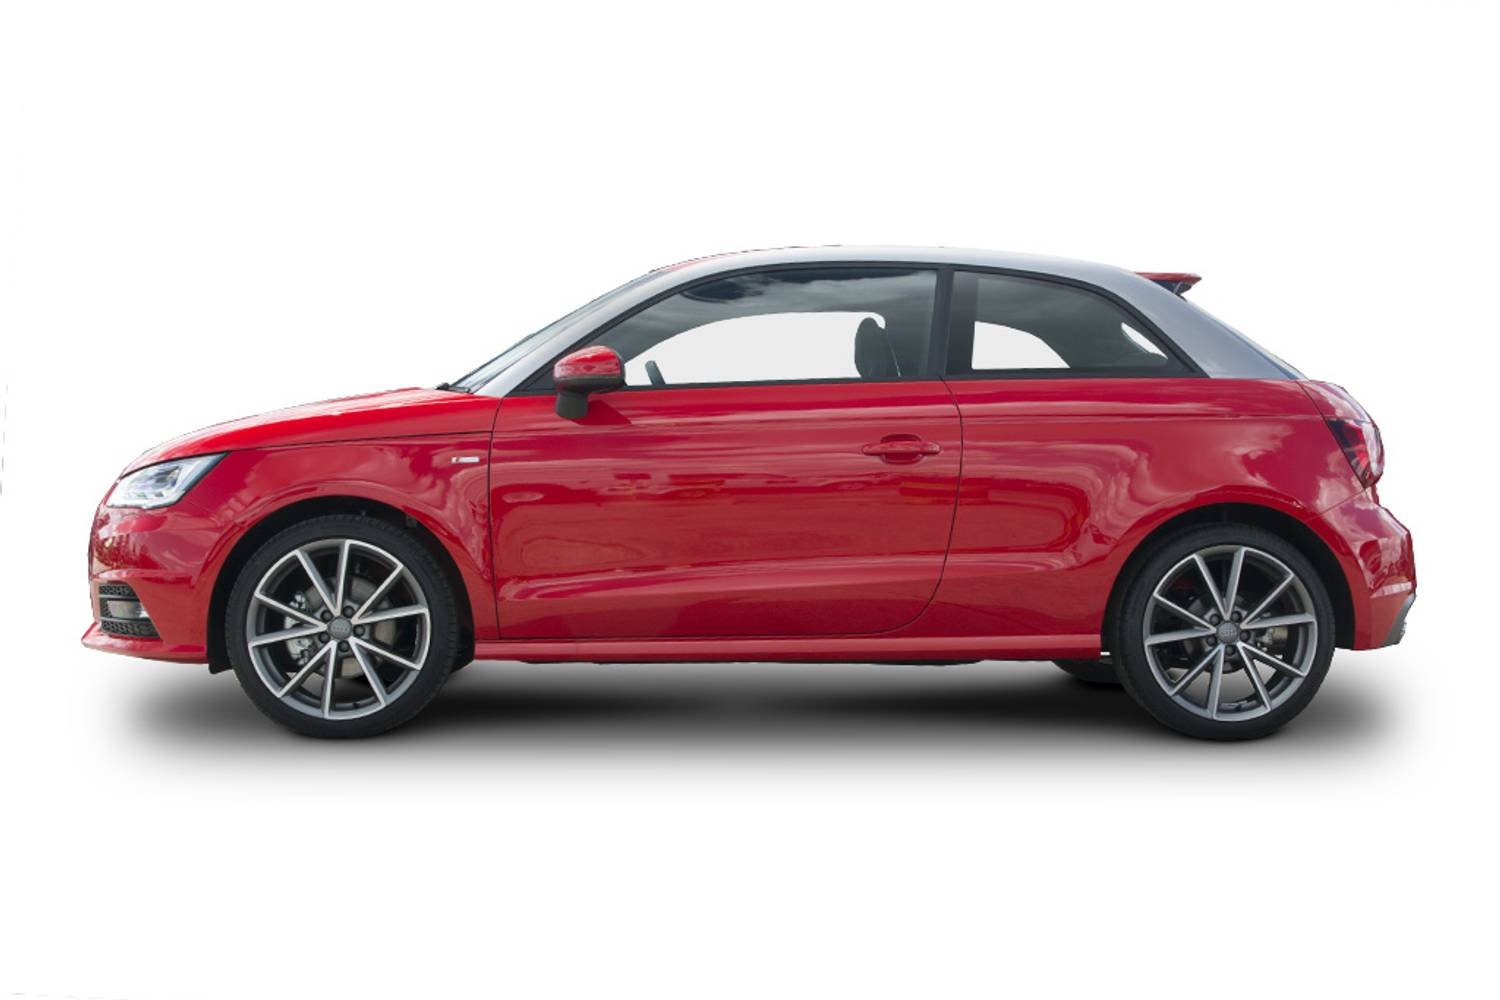 new audi a1 hatchback s1 tfsi quattro nav 3 door 2017 for sale. Black Bedroom Furniture Sets. Home Design Ideas